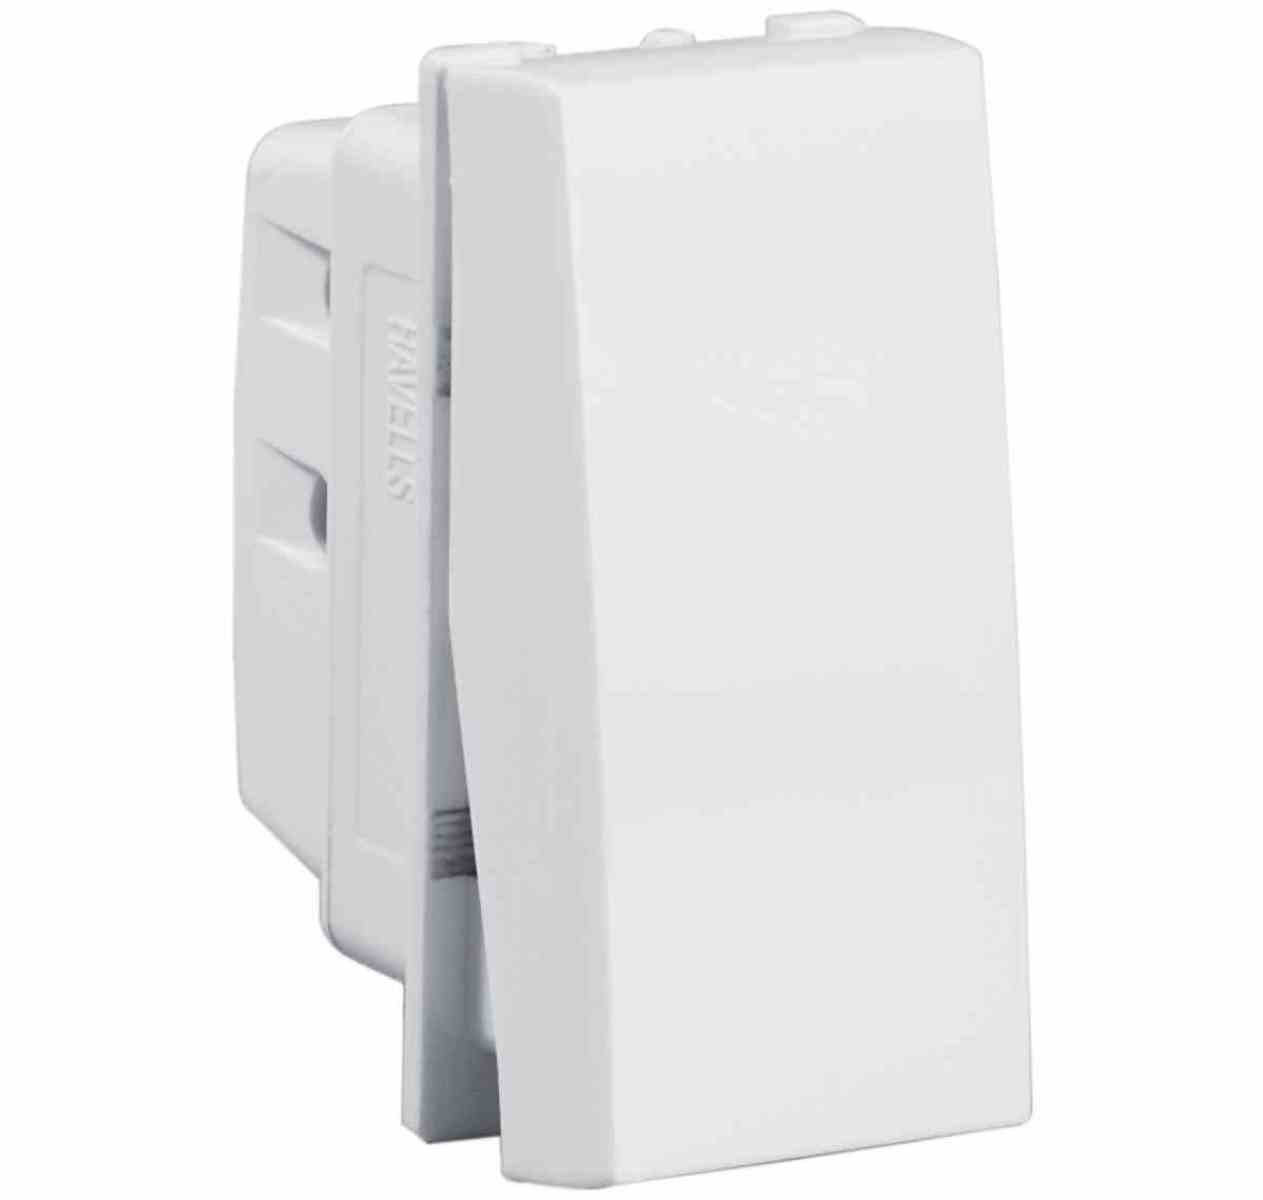 6A 1 Way Switch - Electrical and Networking, Electrical Switches ...